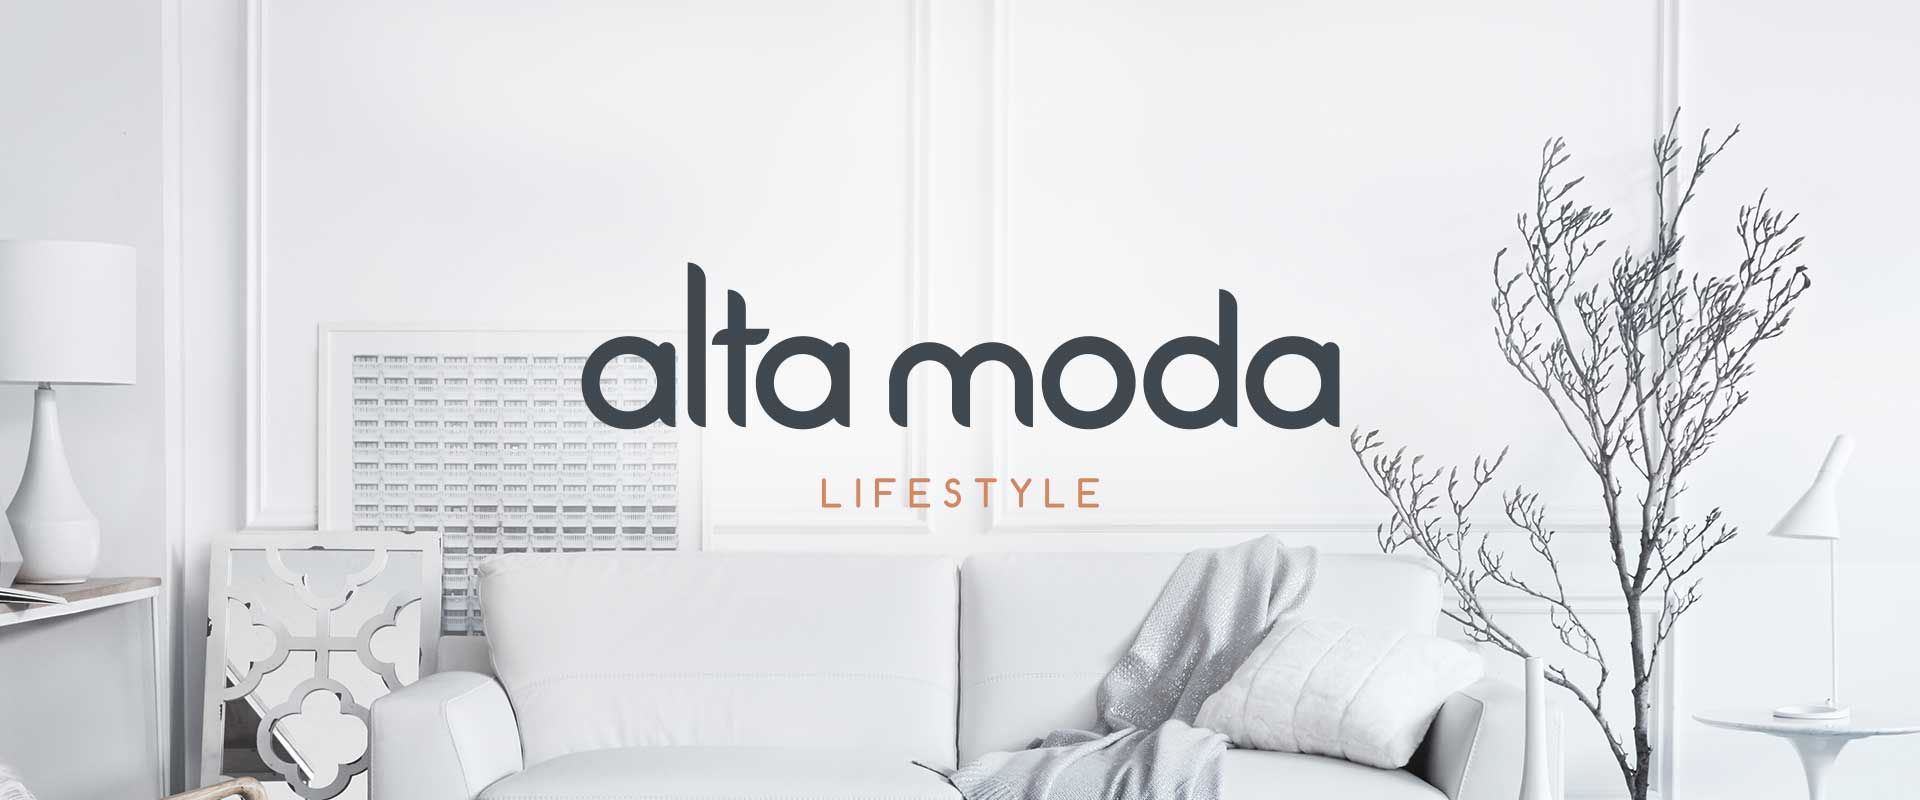 Website Design, Online Catalogue & EDM Design for luxury brand of homewares and furniture, Alta Moda Lifestyle by Grays eCommerce in Sydney Australia, image 01